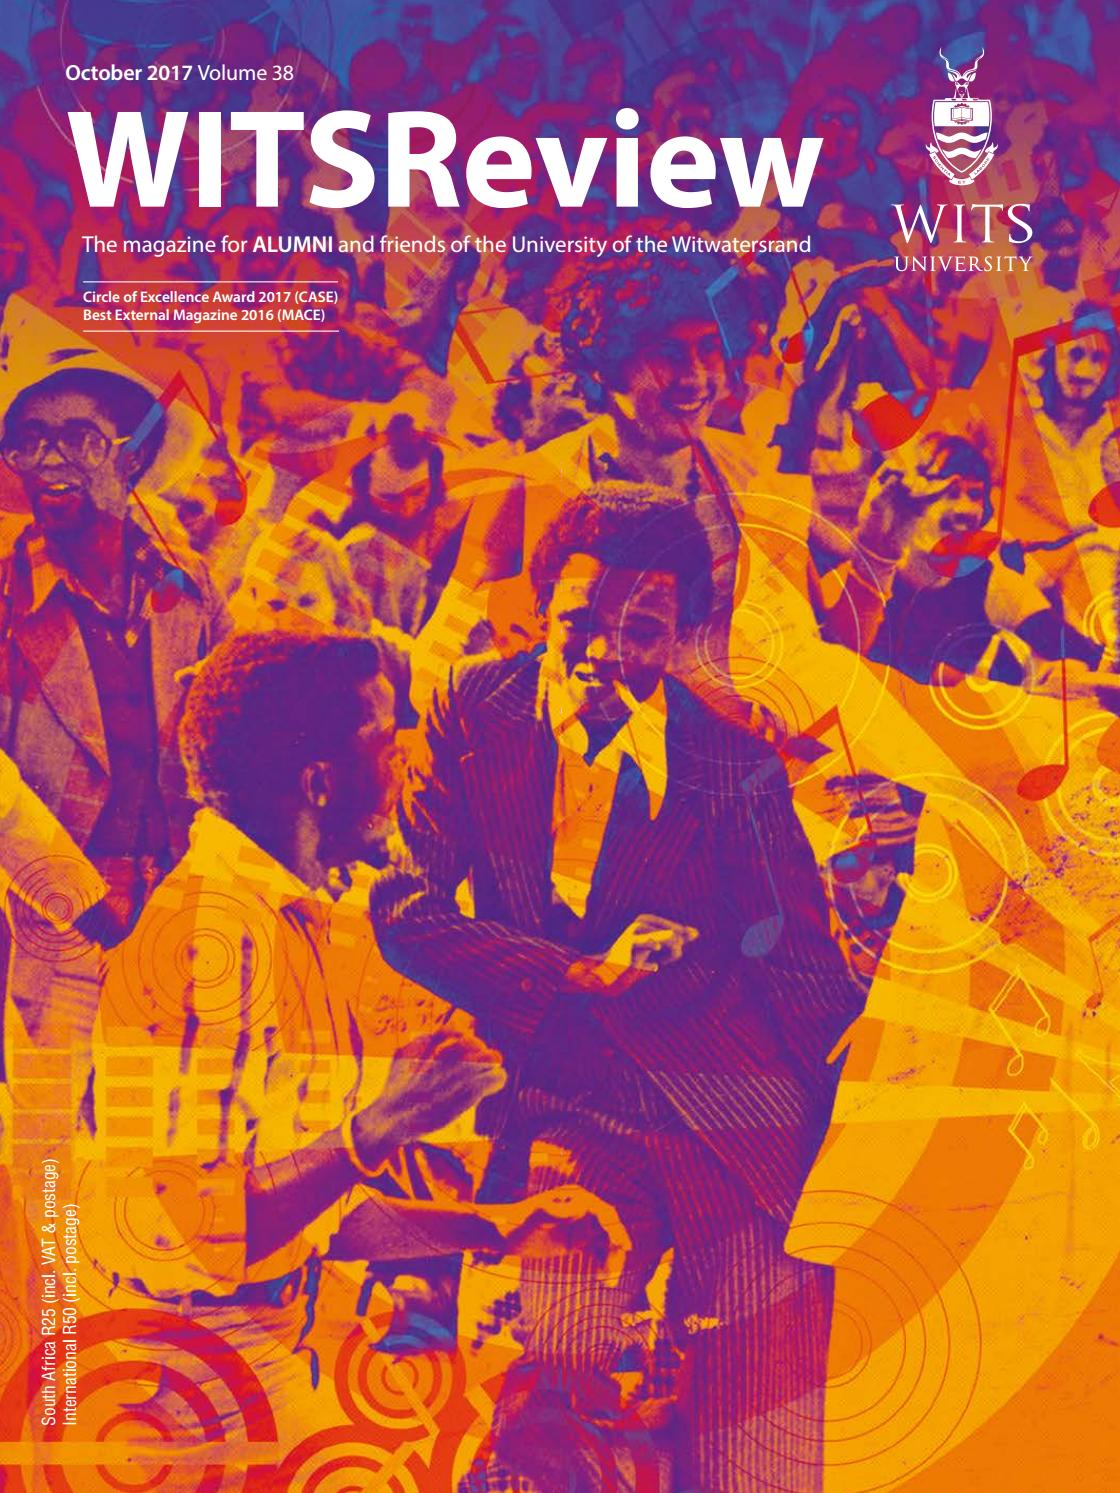 Wits Review October 2017 by Wits Alumni Relations - issuu